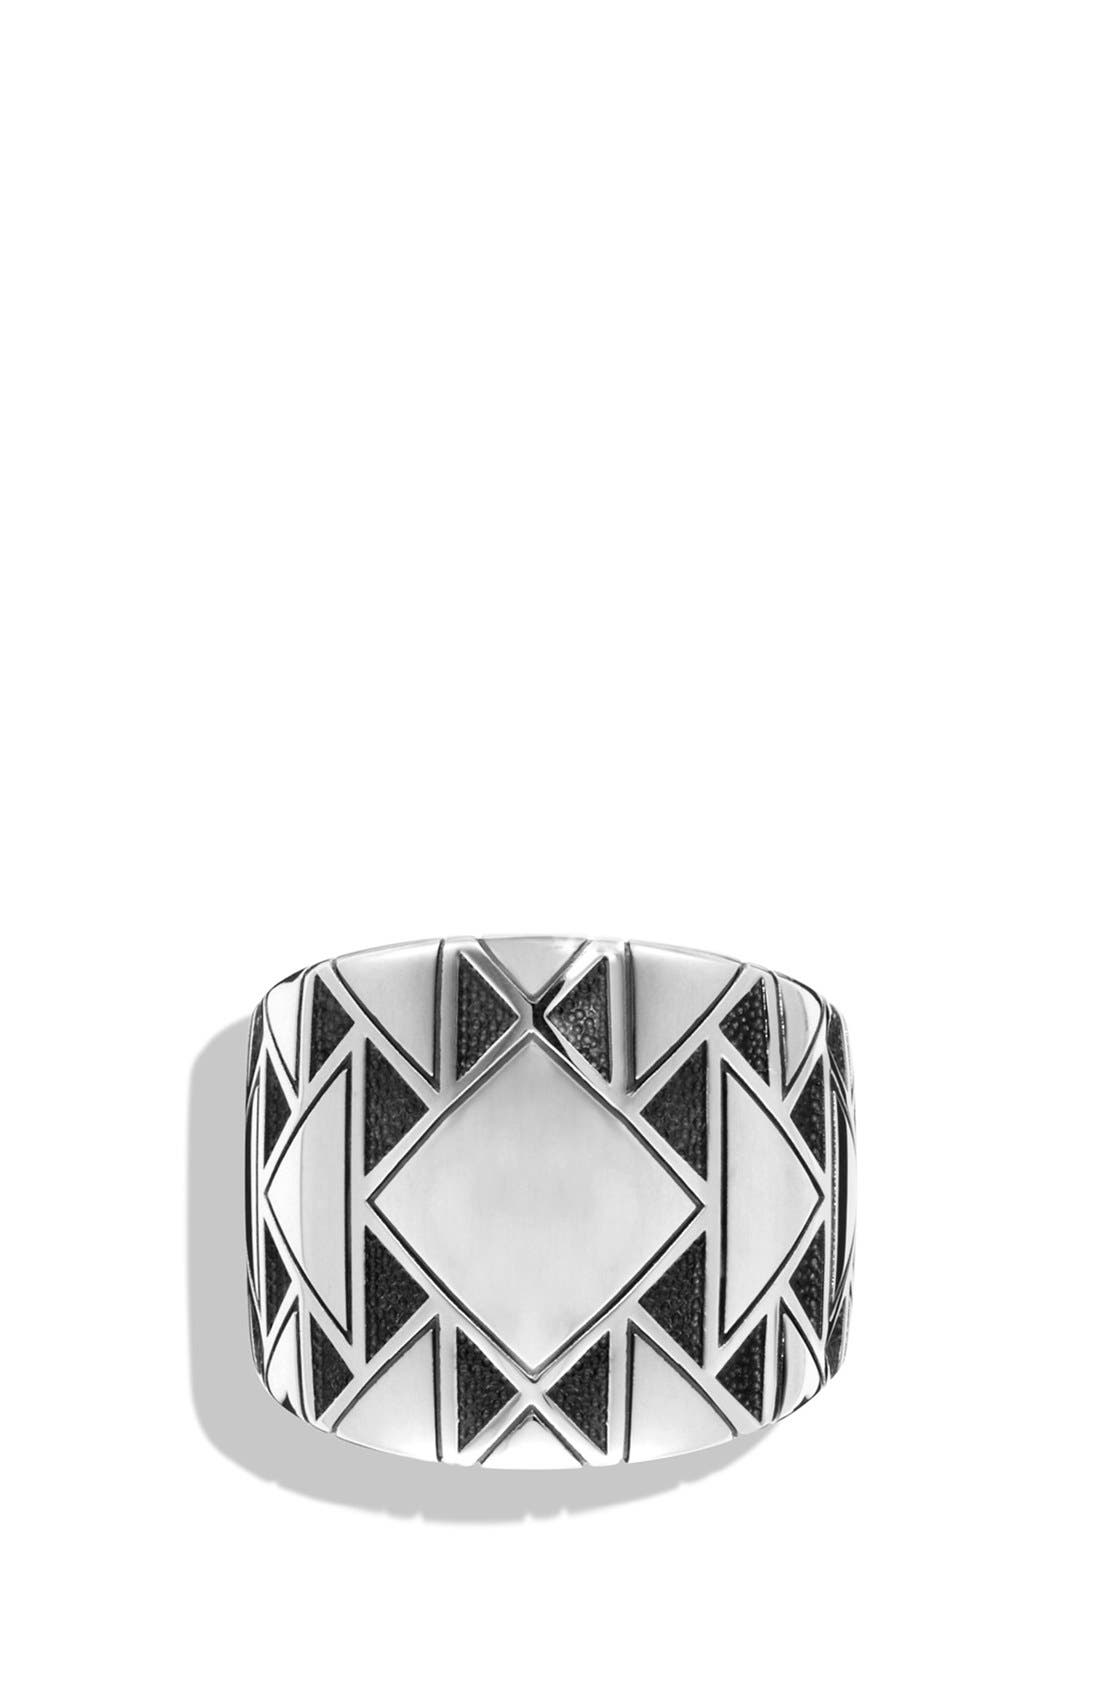 Southwest Signet Ring with Black Diamonds,                             Alternate thumbnail 2, color,                             Silver